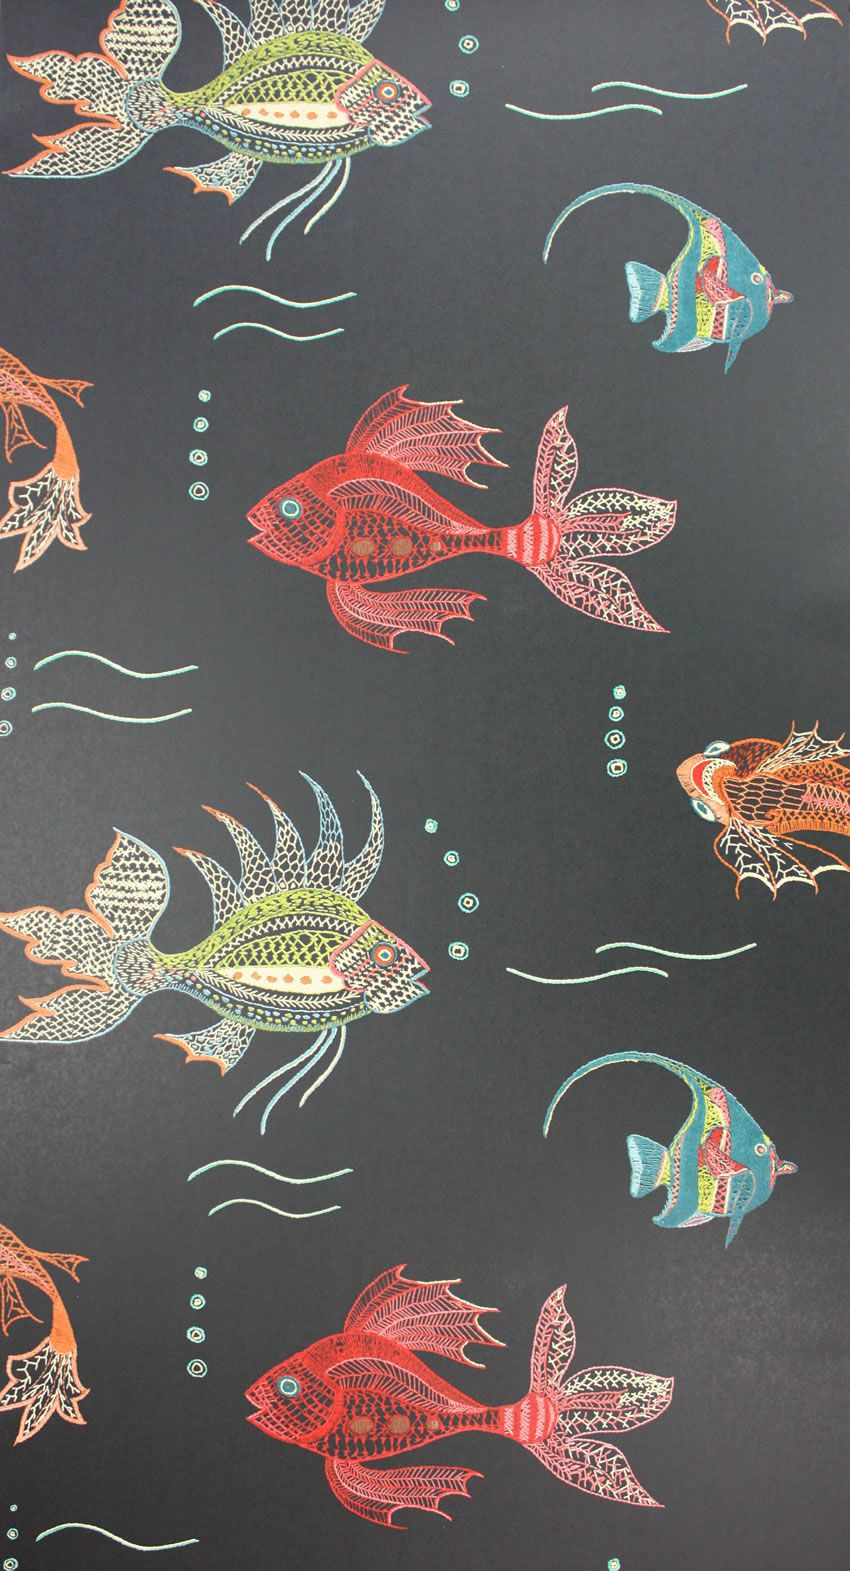 Sample Aquarium Wallpaper in Black and Multi-Color from the Perroquet Collection by Nina Campbell